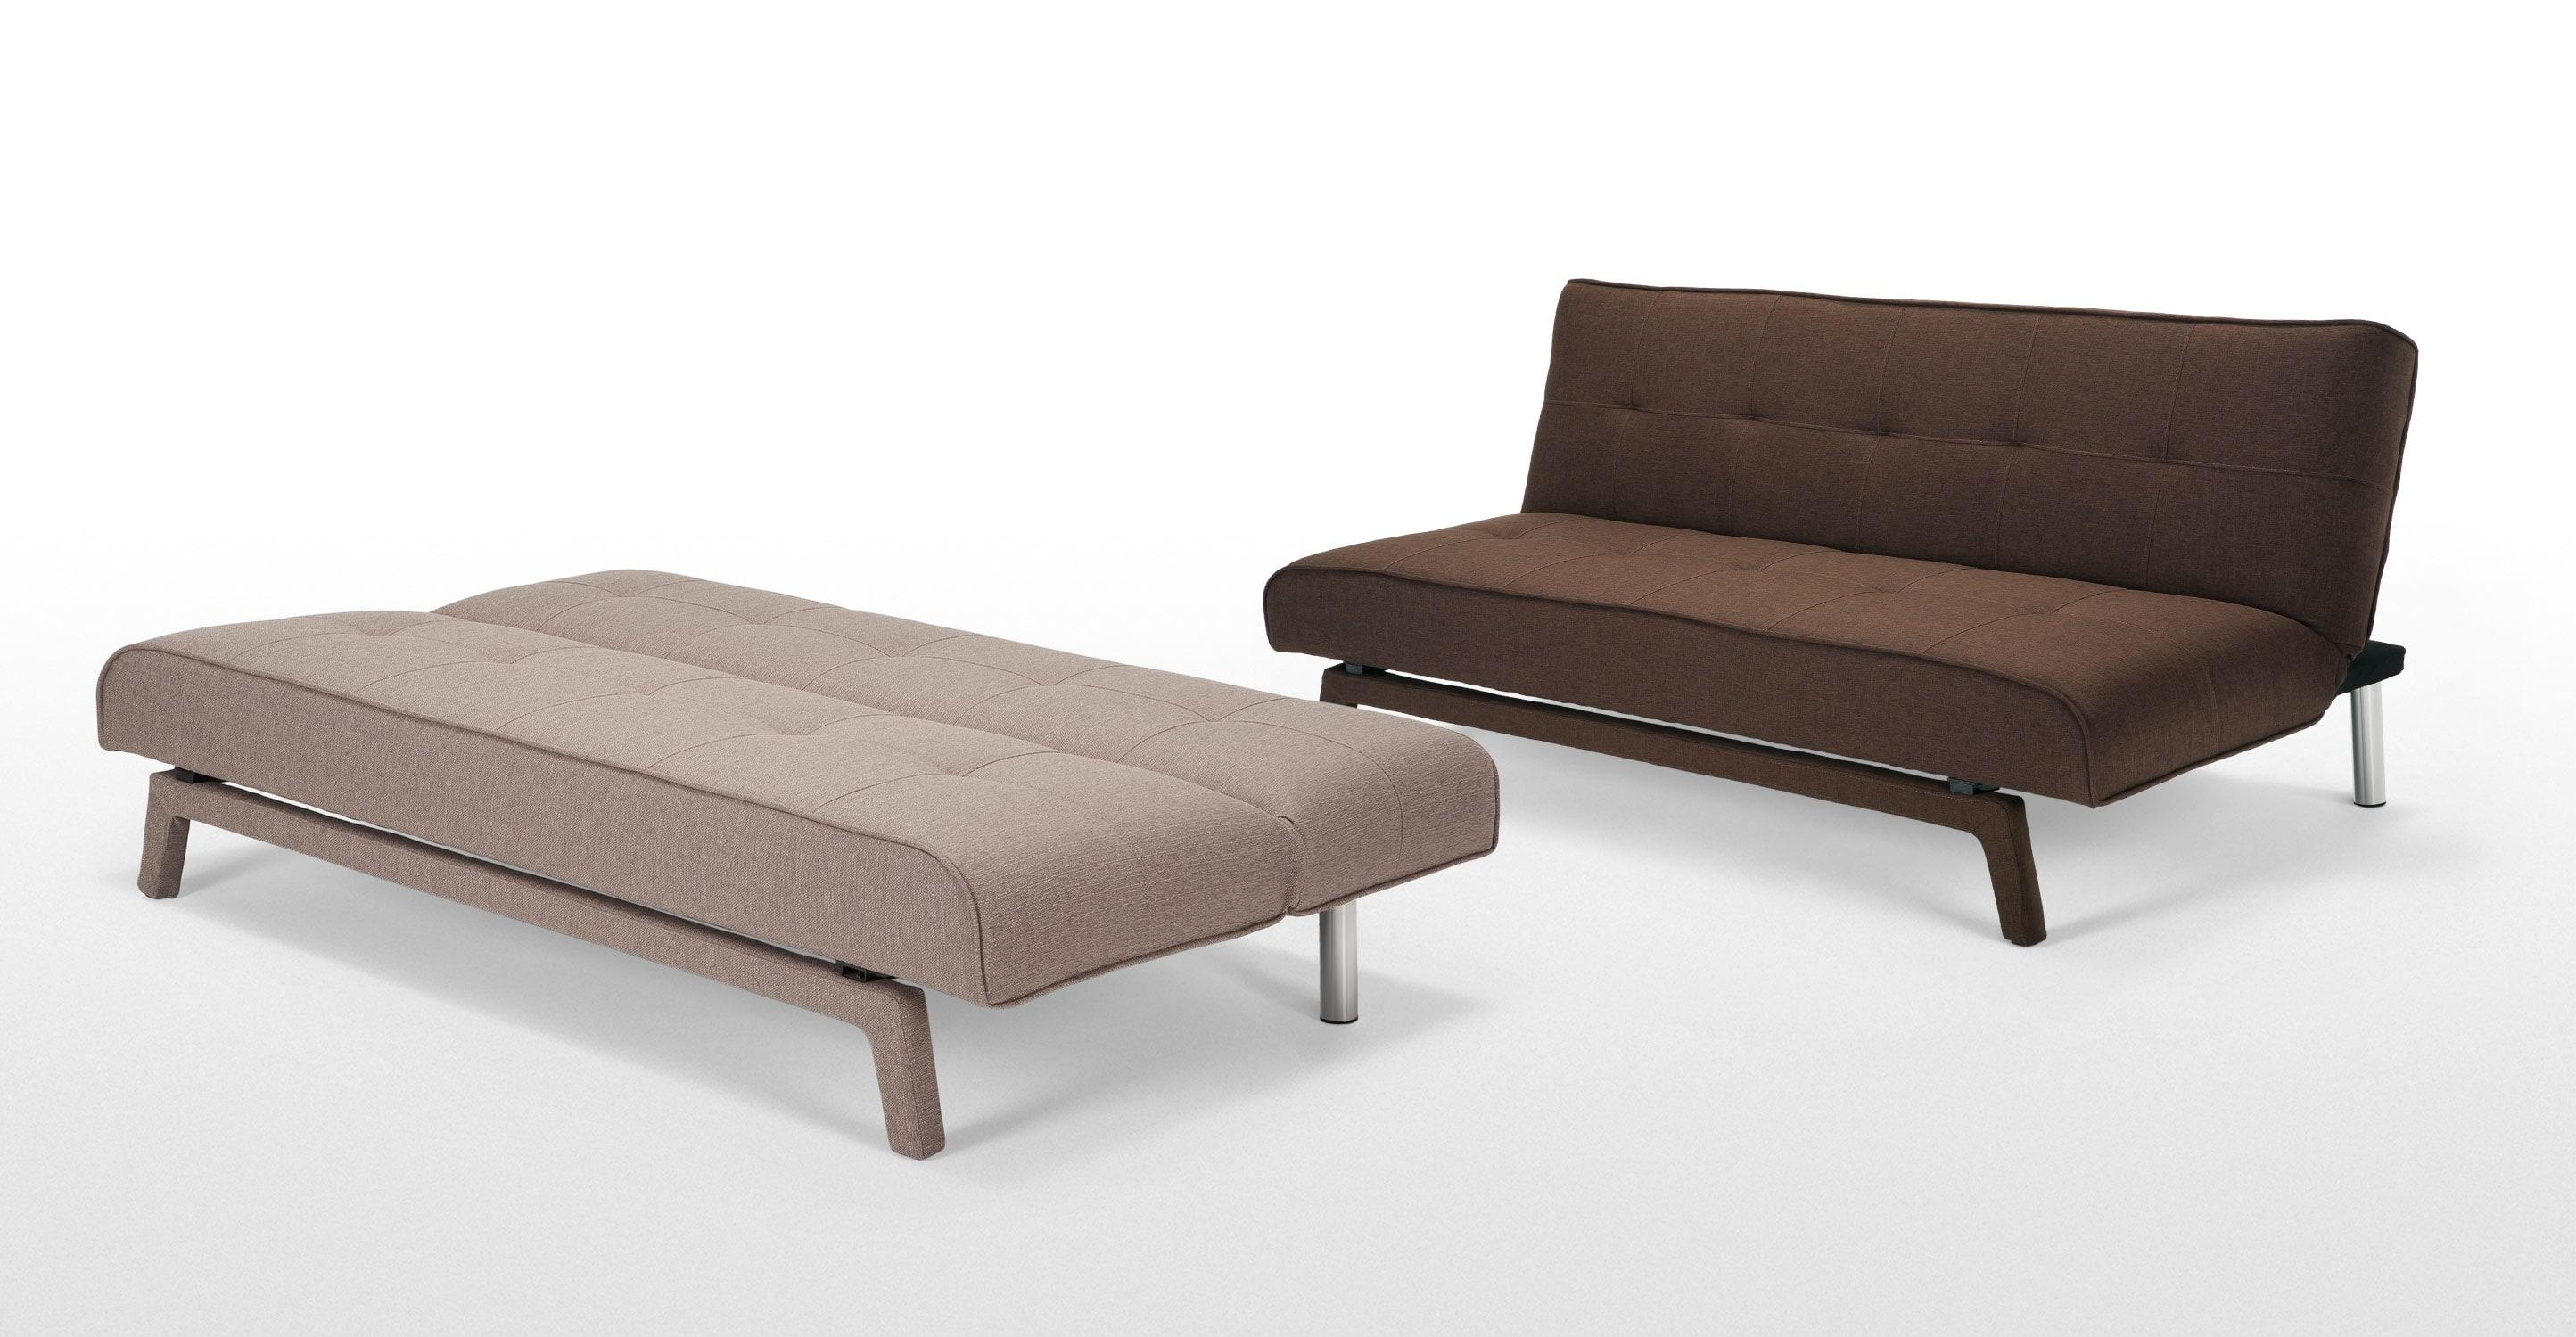 Sofas Center Awesome Sofa Teamnacl Mostable Mattress Ukmost Beds Within Unusual Sofa (Image 14 of 20)